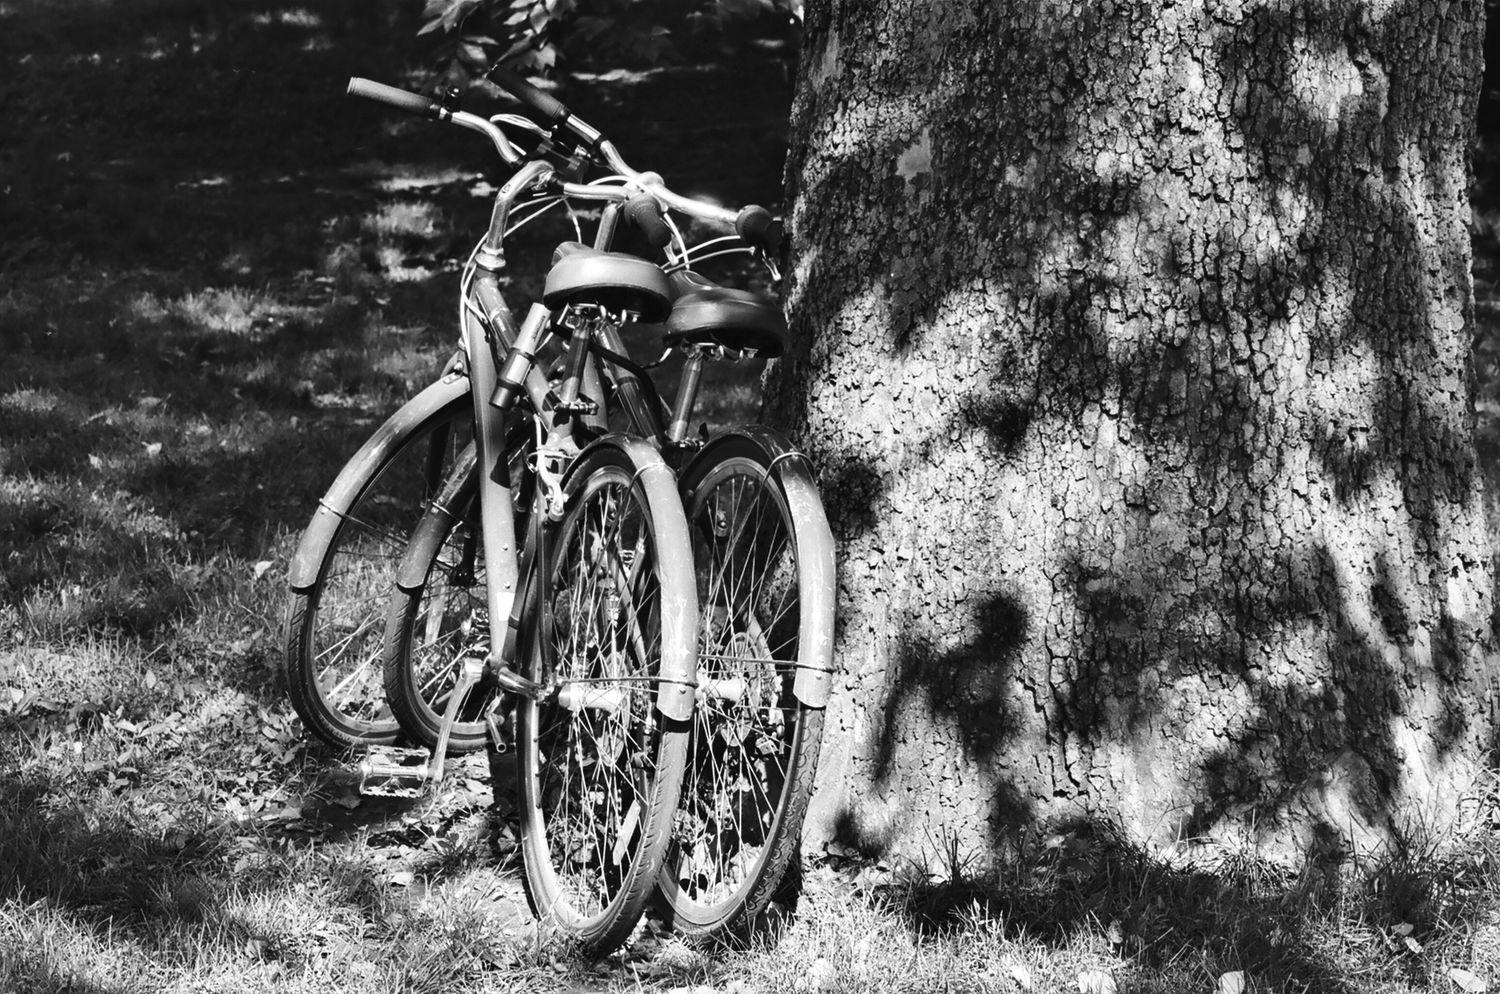 Bicycles by the Tree, New York 2014   Edition 1 of 2